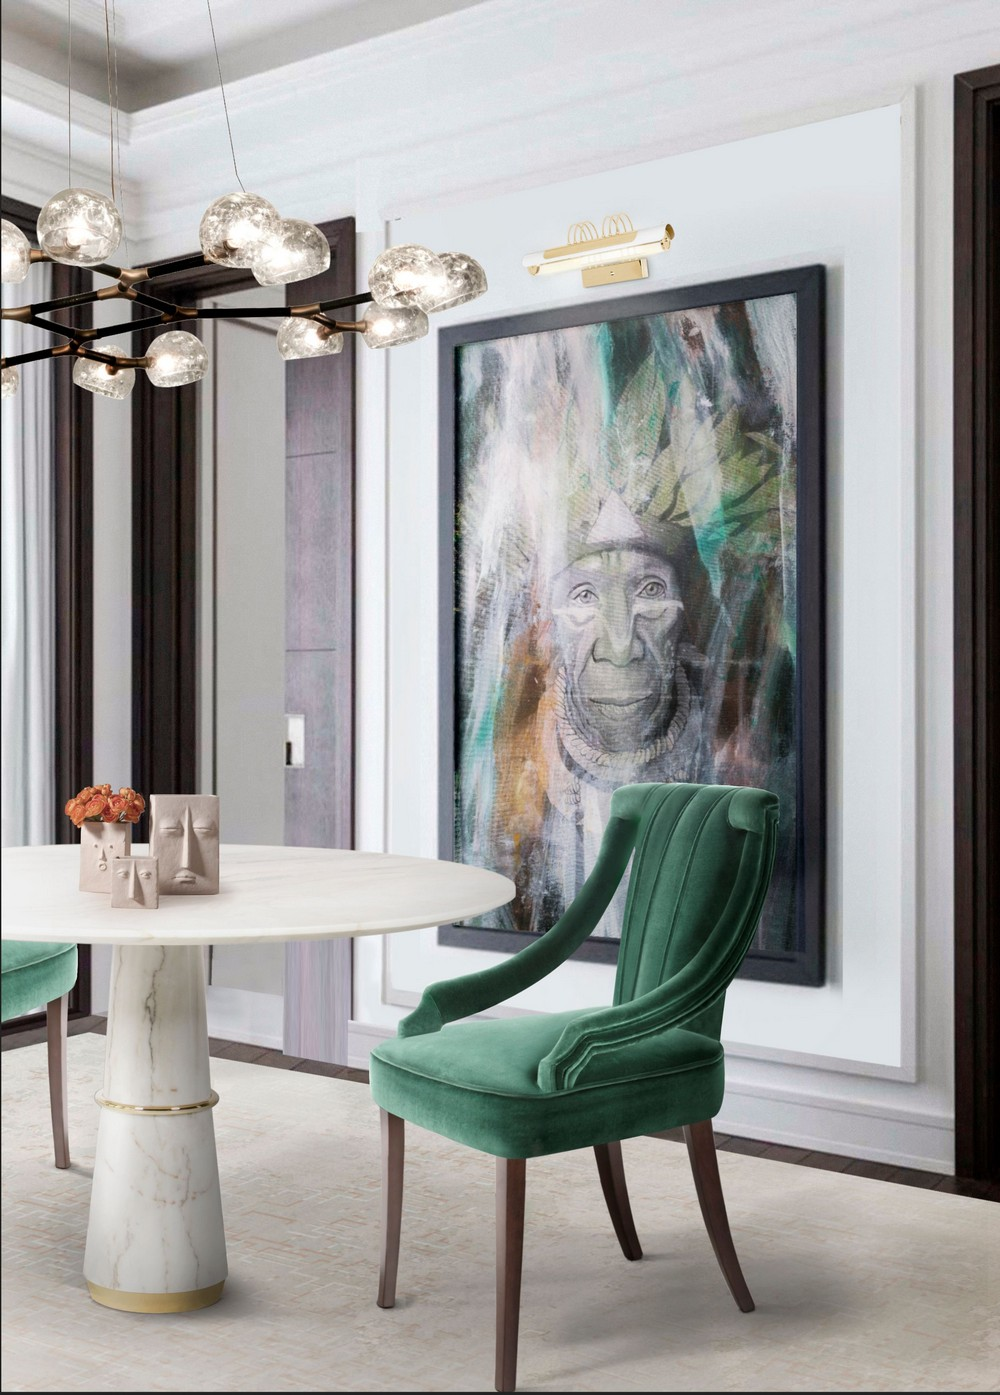 Luxury Dining Chairs To Transform Your Next Dining Room Project dining chairs Luxury Dining Chairs To Transform Your Next Dining Room Project xW6 8NPg